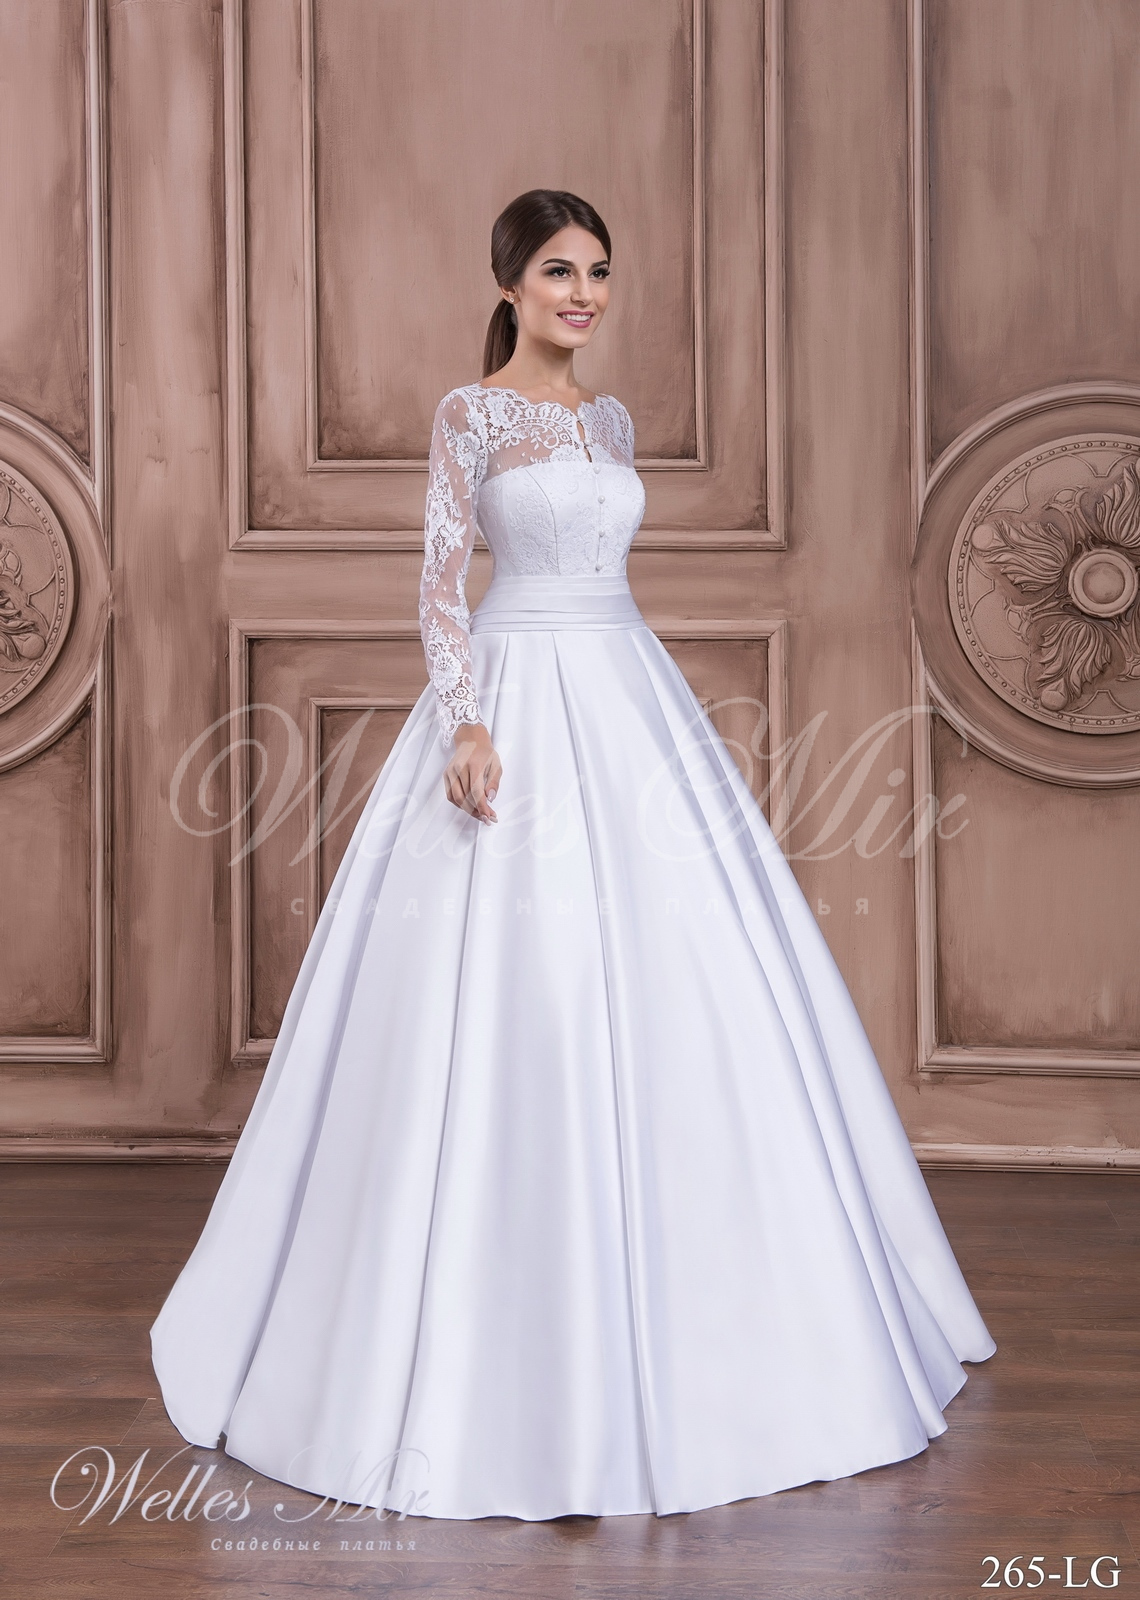 Wedding dresses 265-LG